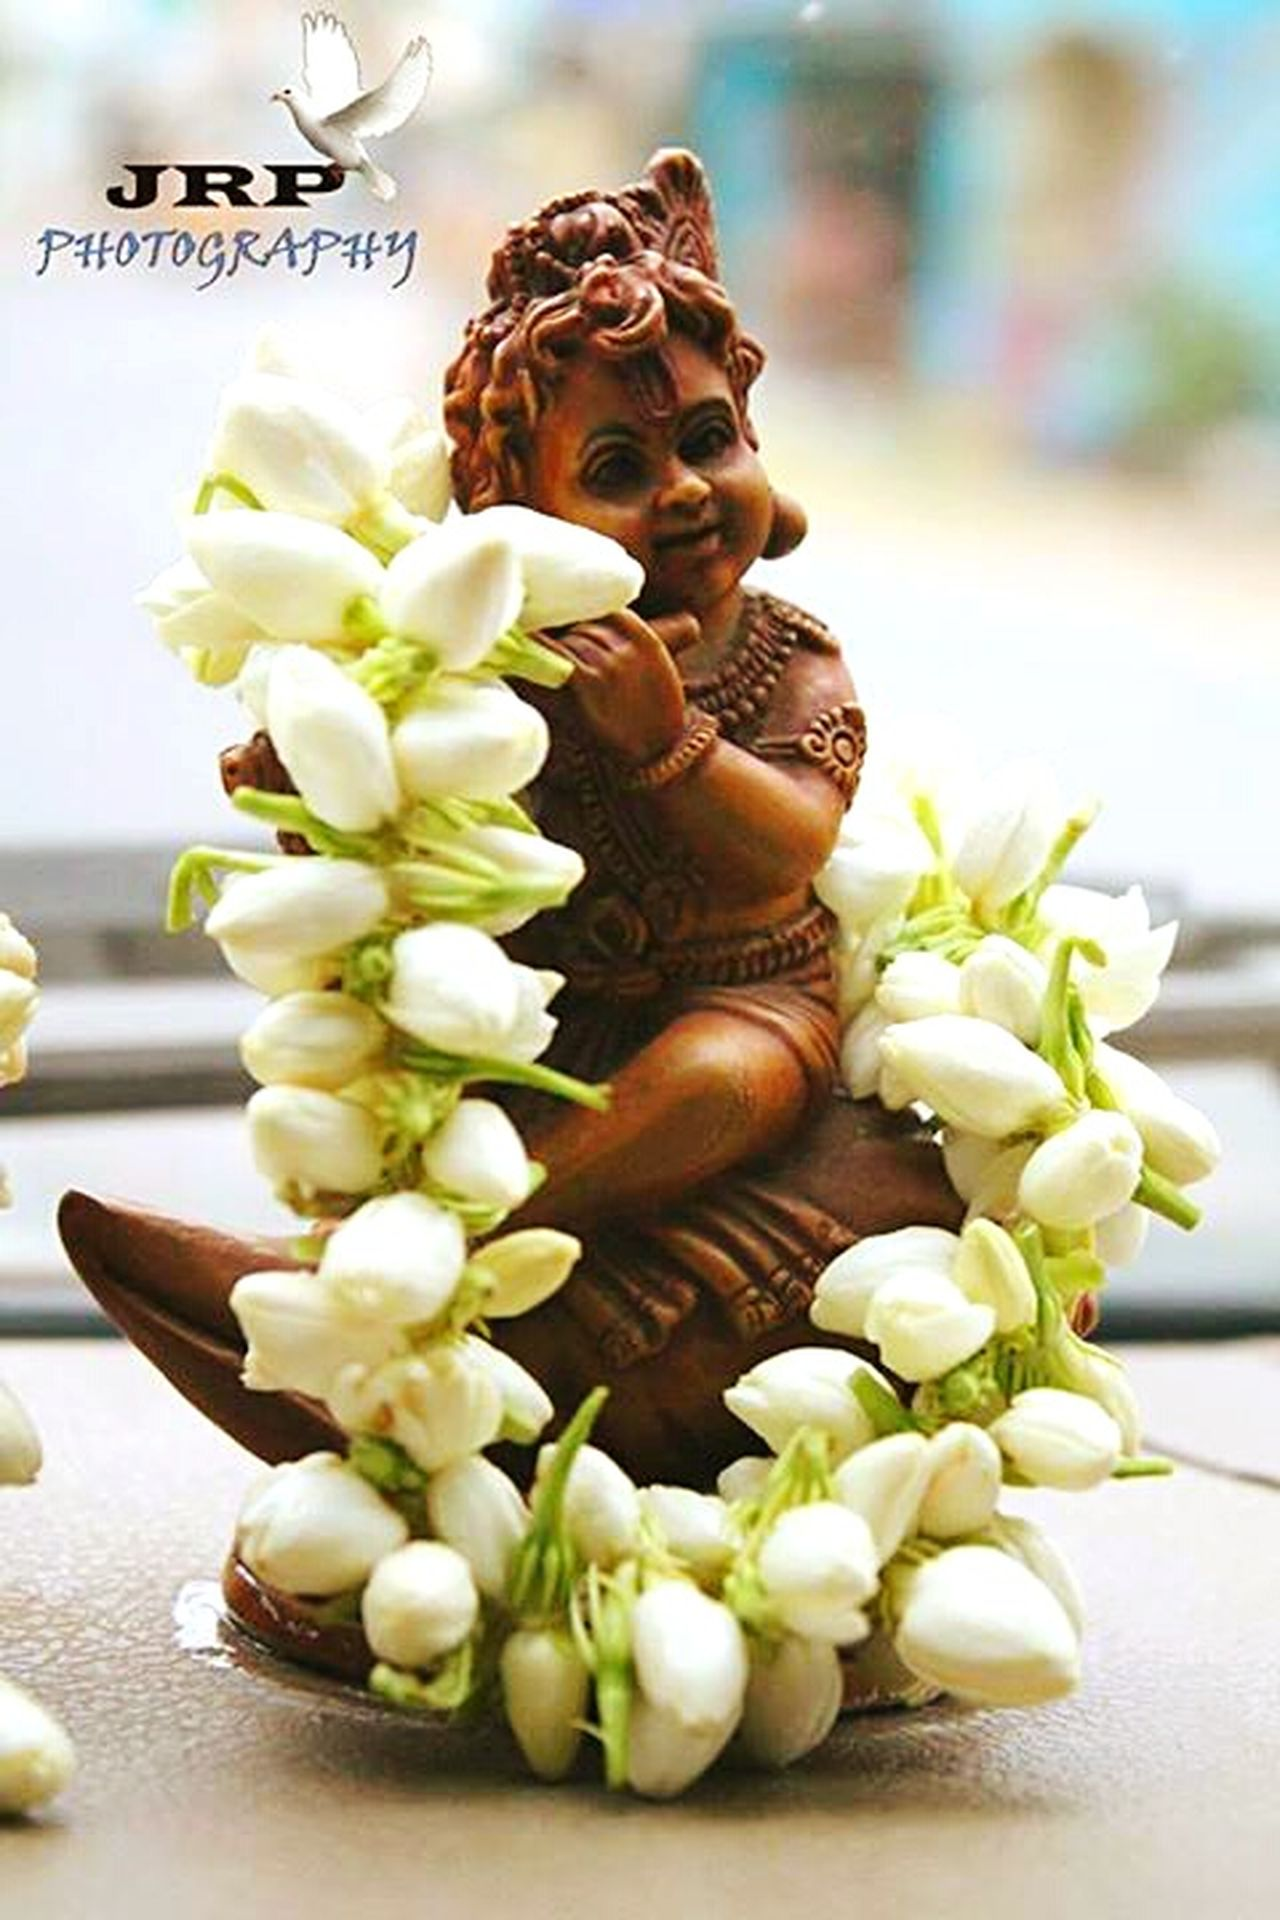 Load Krishna. JRPphotography Load Krishna Close-up Flowers Beautiful ♥ India India Eyeem Eyeem India Indian Indiapictures Indianphotography India_clicks Indian Culture  Freshness Bunch Of Flowers Vacations Creativity Focus On Foreground Growth New Life Flower Art Of Life Key Of Mind Key Of Life Art Of Living